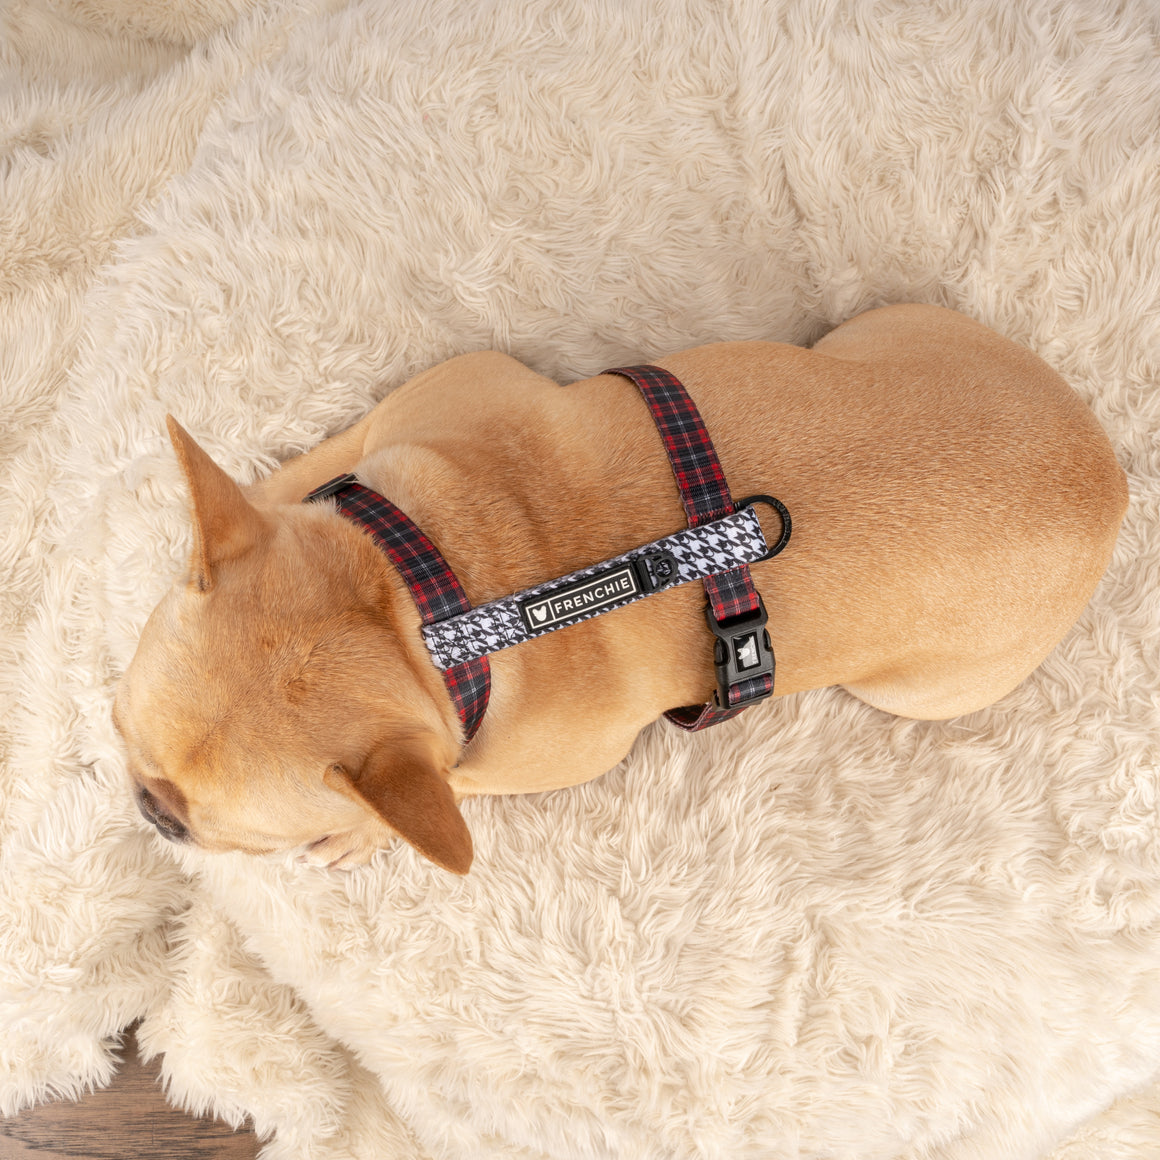 Frenchie Strap Harness - Lumberjack